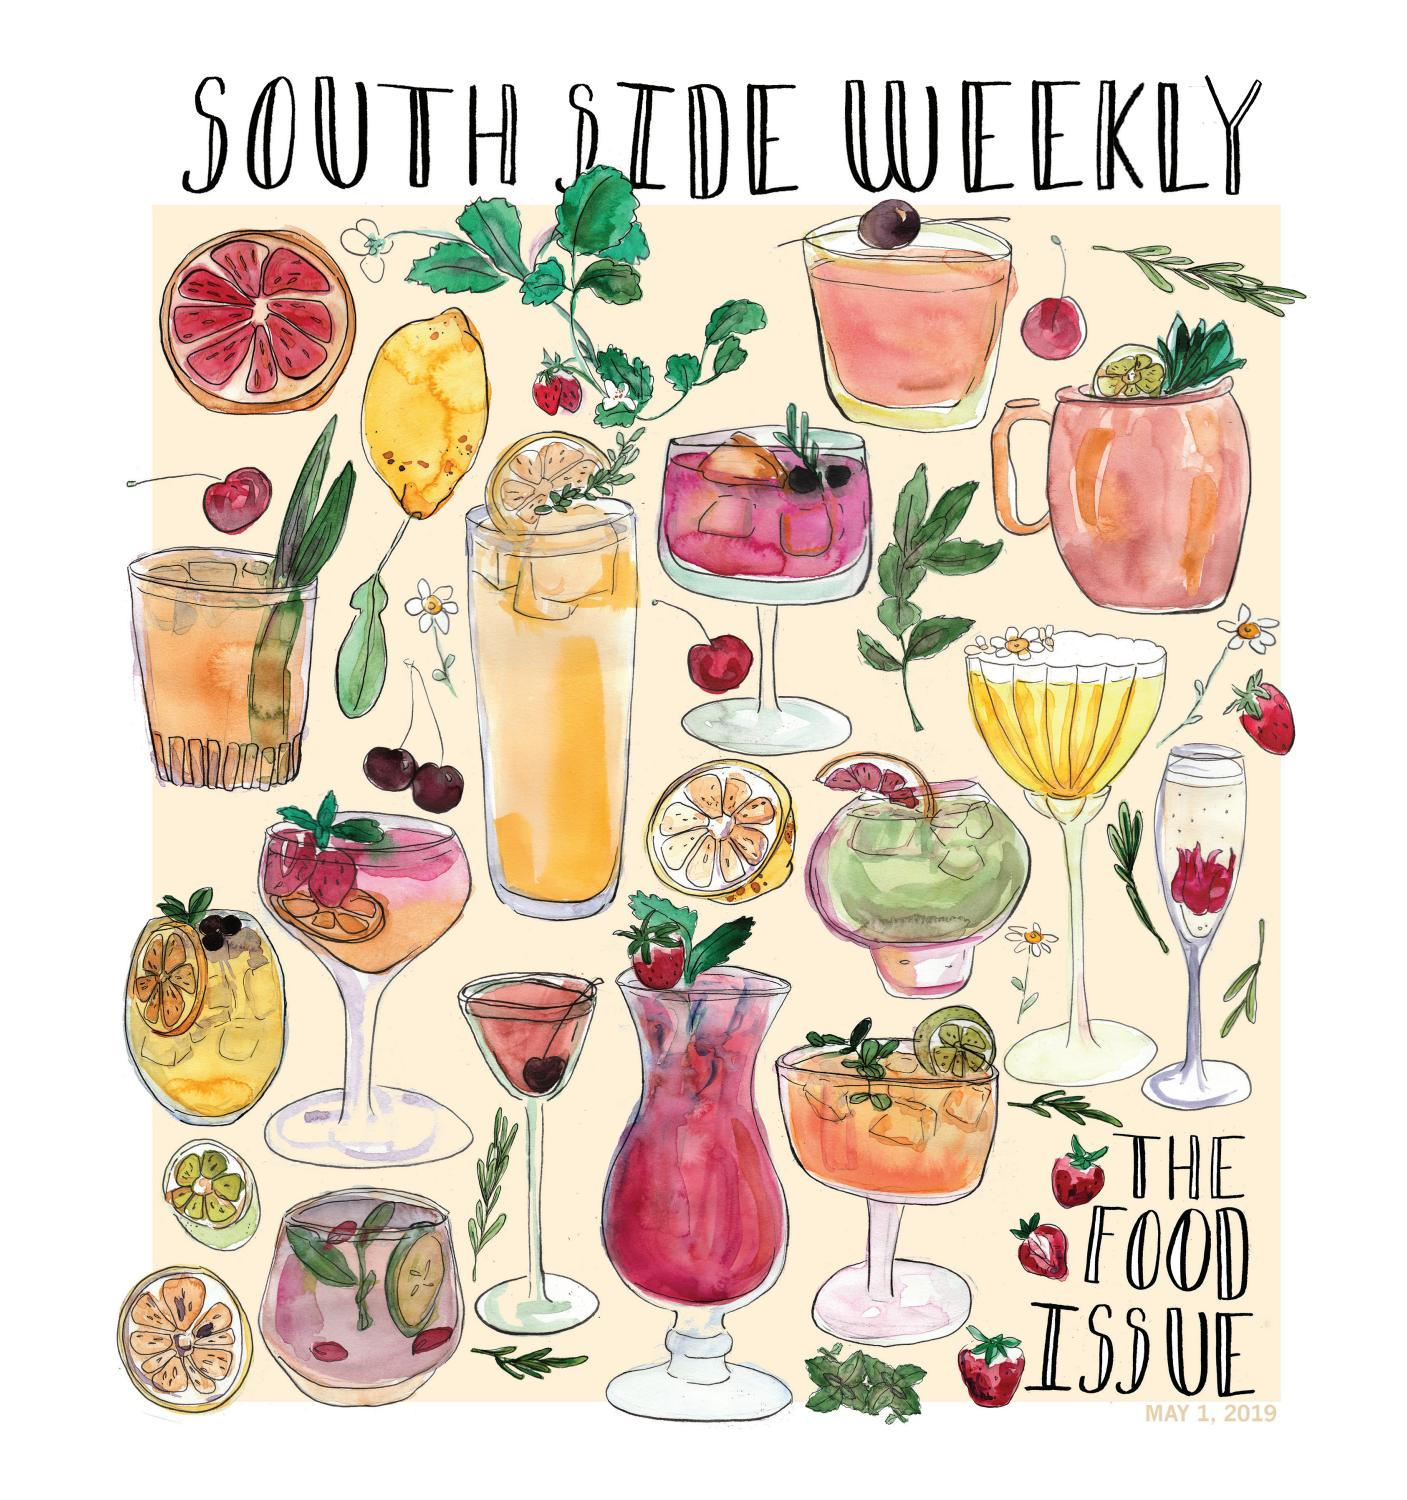 May 1, 2019 by South Side Weekly - issuu